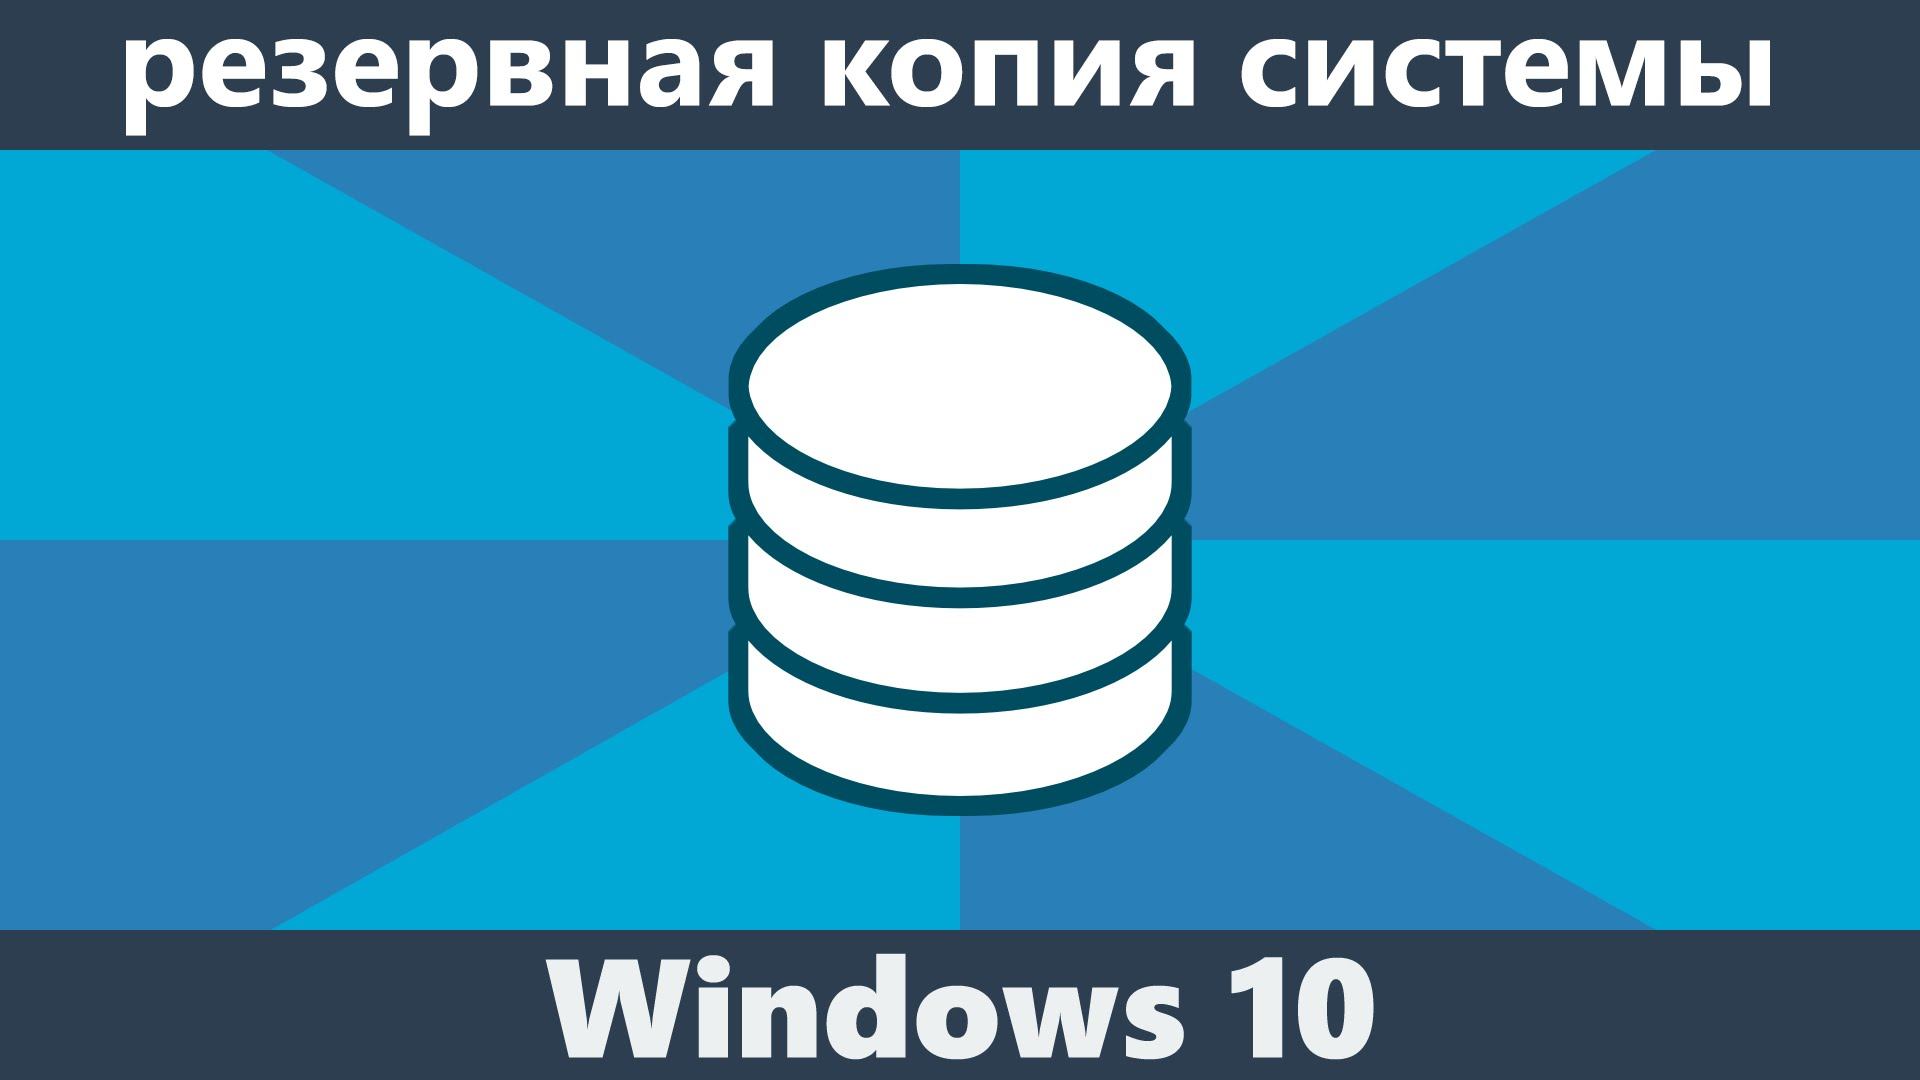 Как создать резервную копию Windows 10?